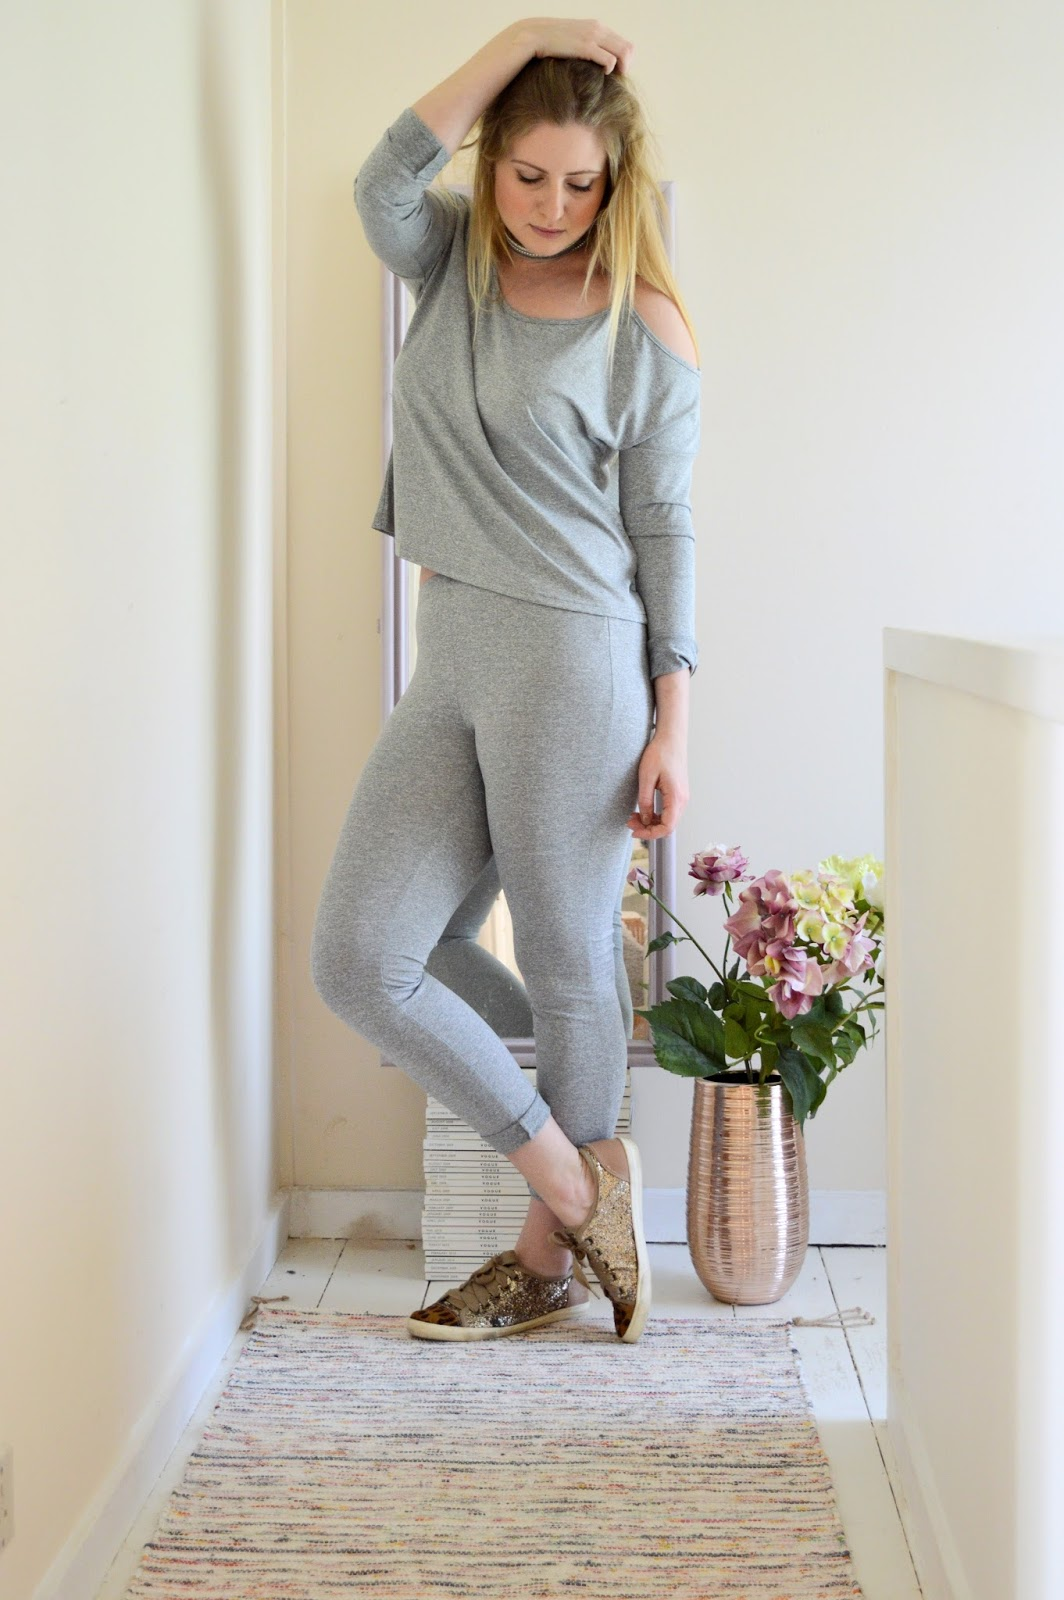 SheIn loungewear set, fashion bloggers, UK fashion blogs, Dalry Rose blog